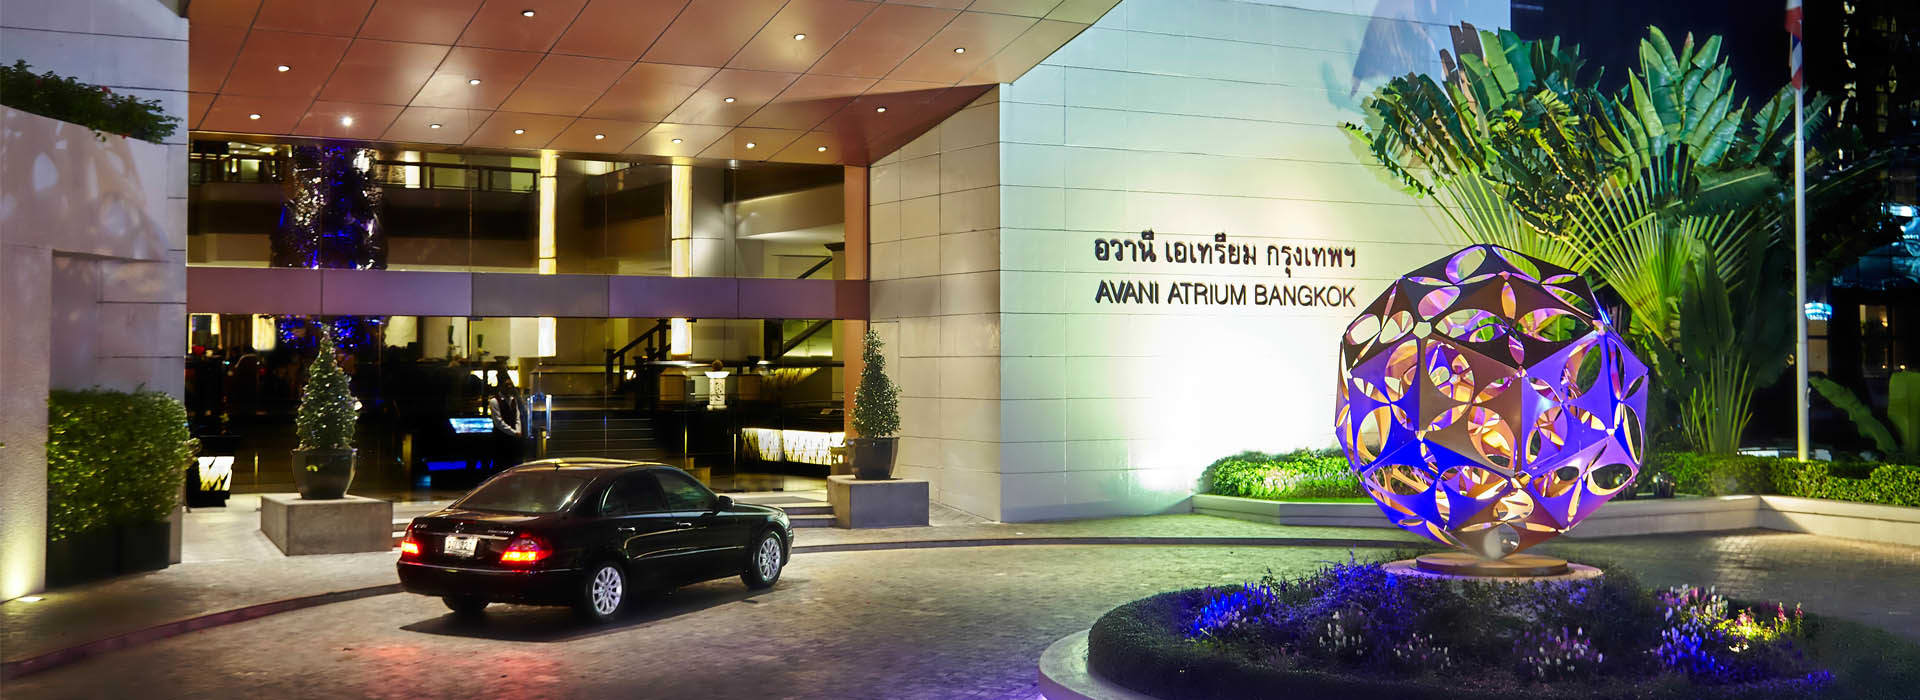 Entrance of AVANI Atrium City Hotel Bangkok